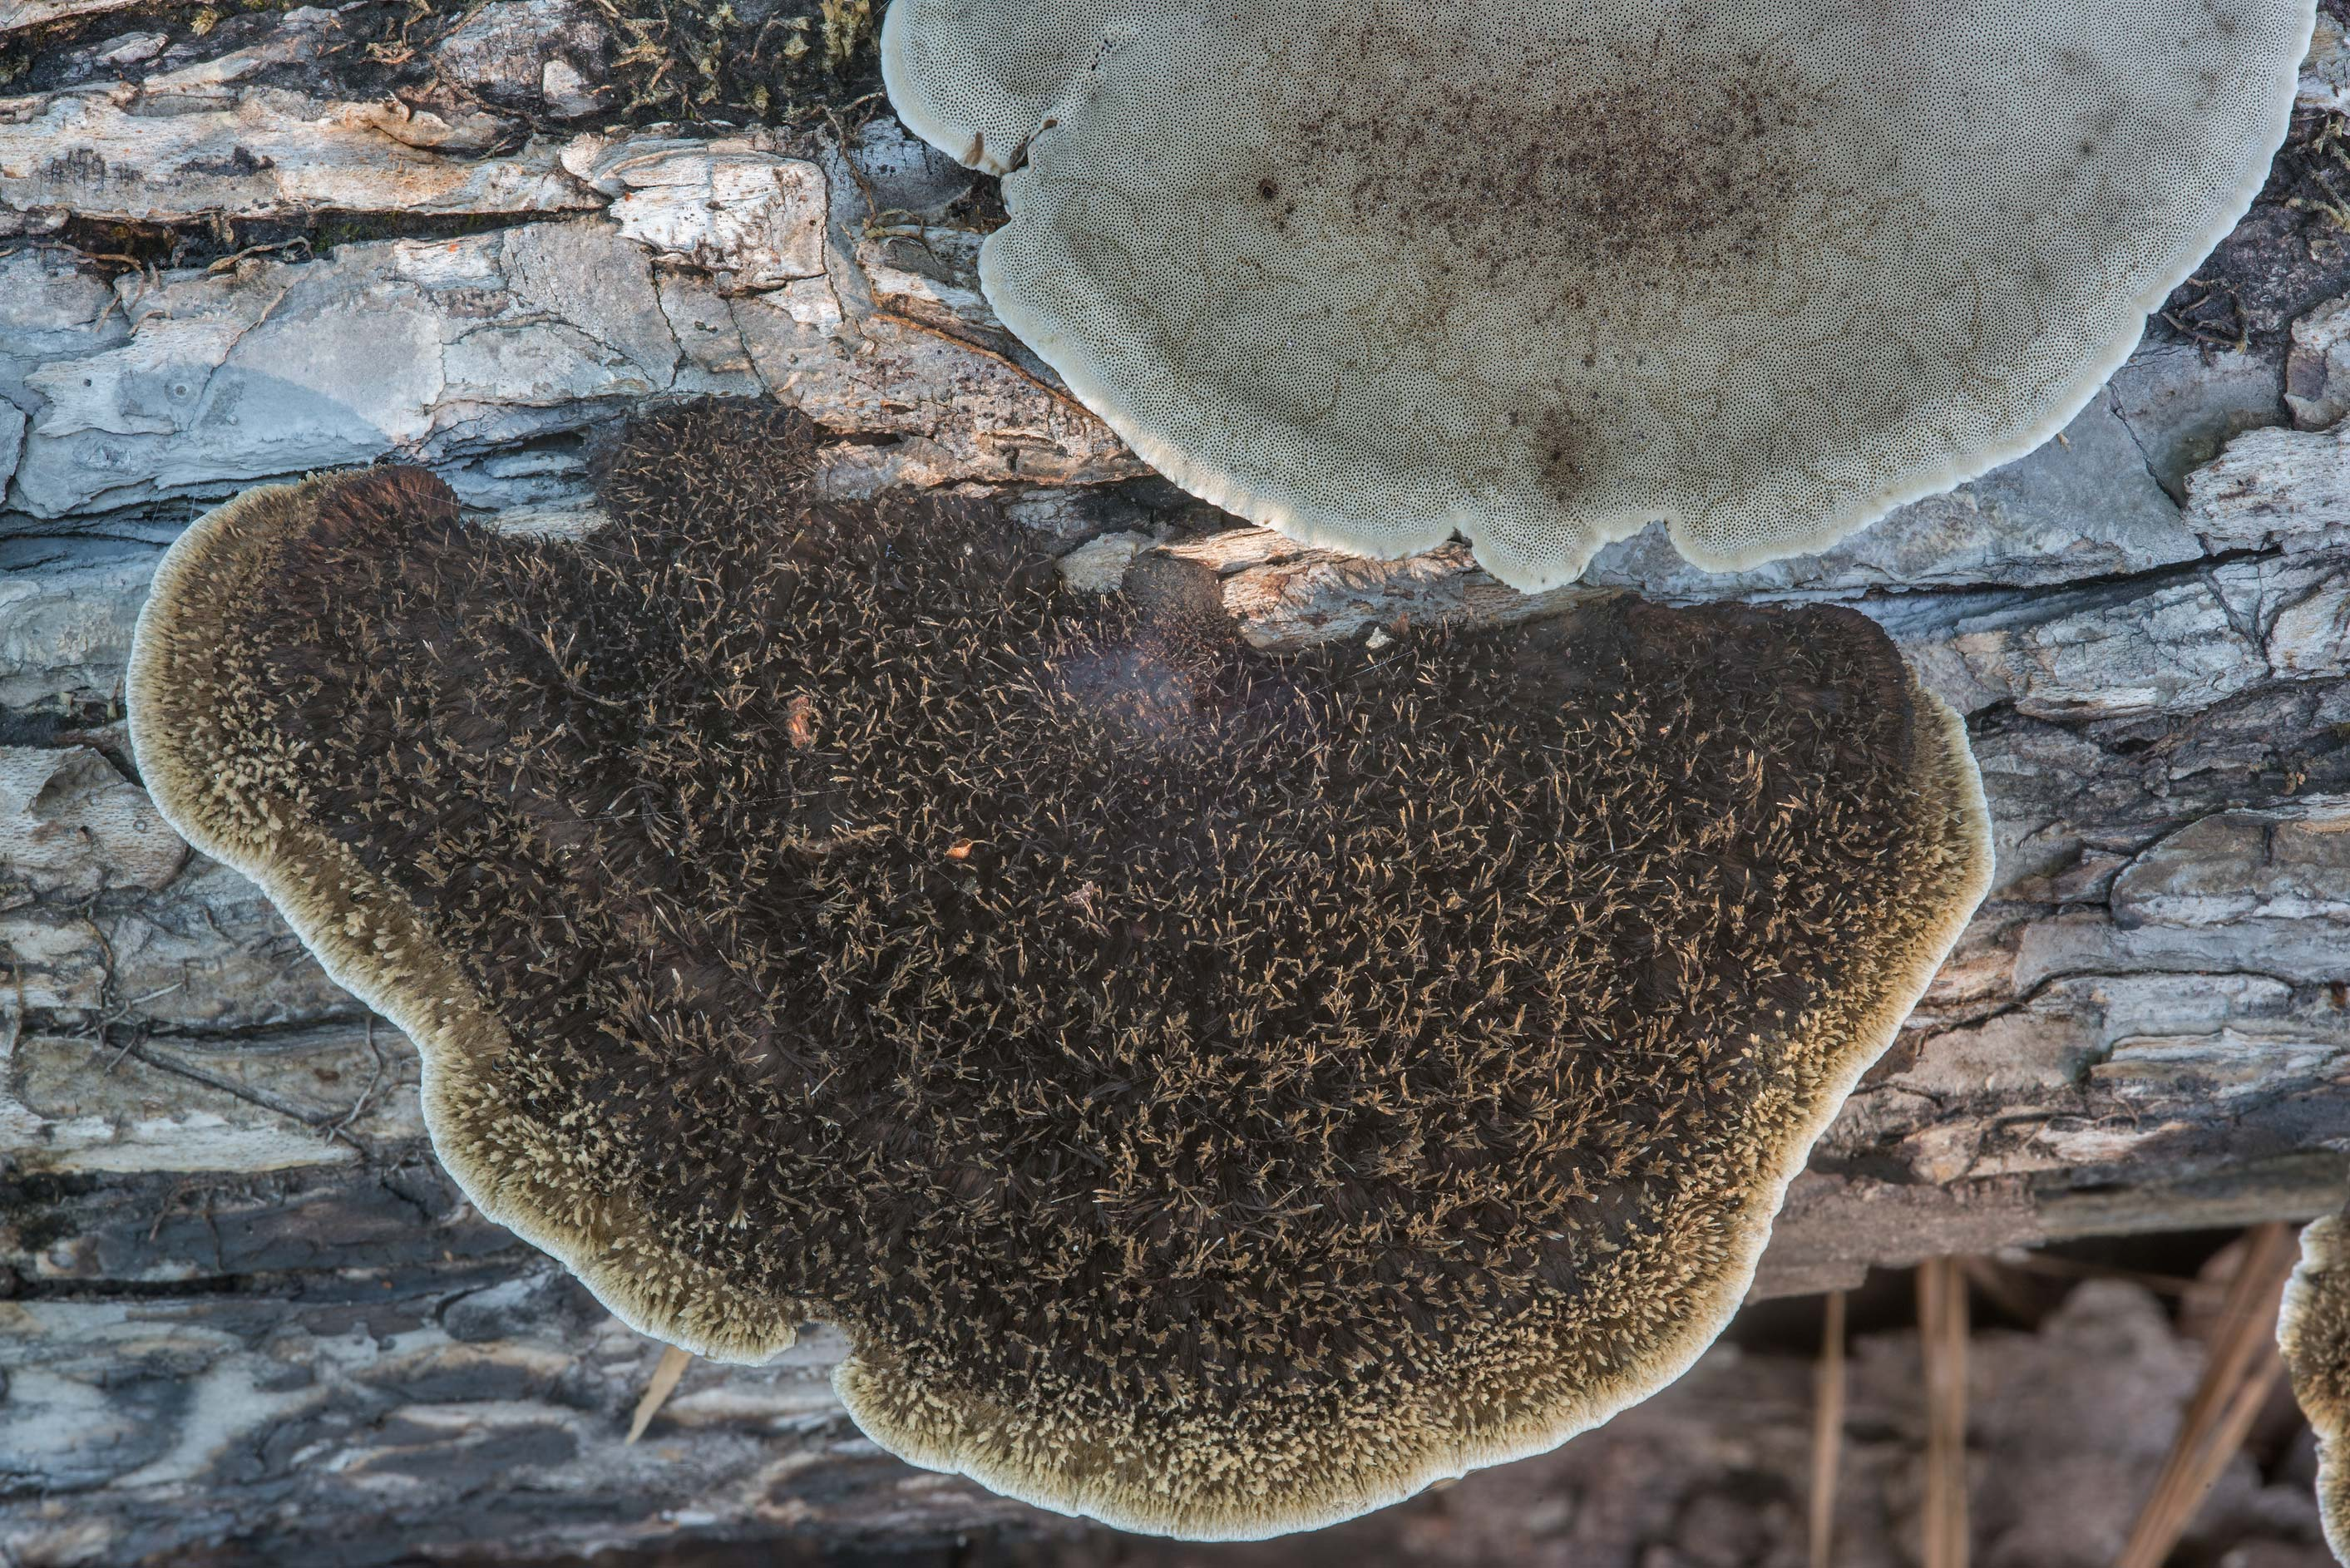 Caps of hairy polypore mushrooms Hexagonia...National Forest. Richards, Texas